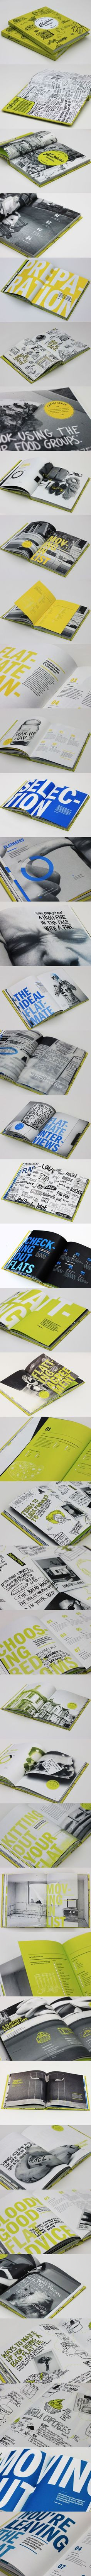 Flatmates Handbook + use of black and white combined with colour, quirky imagery, large typography, pace between spreads